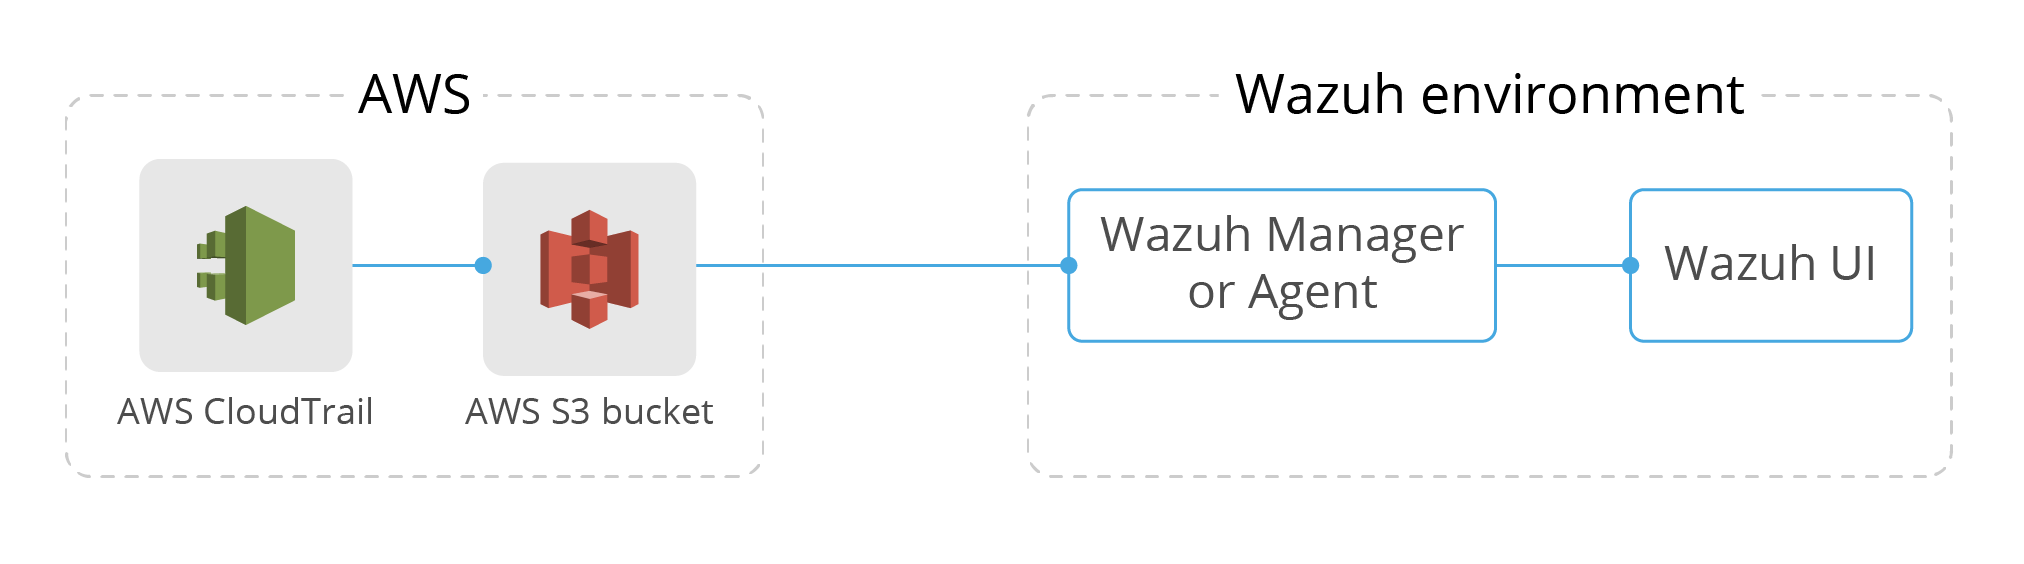 Monitor AWS activity with AWS Cloudtrail and Wazuh